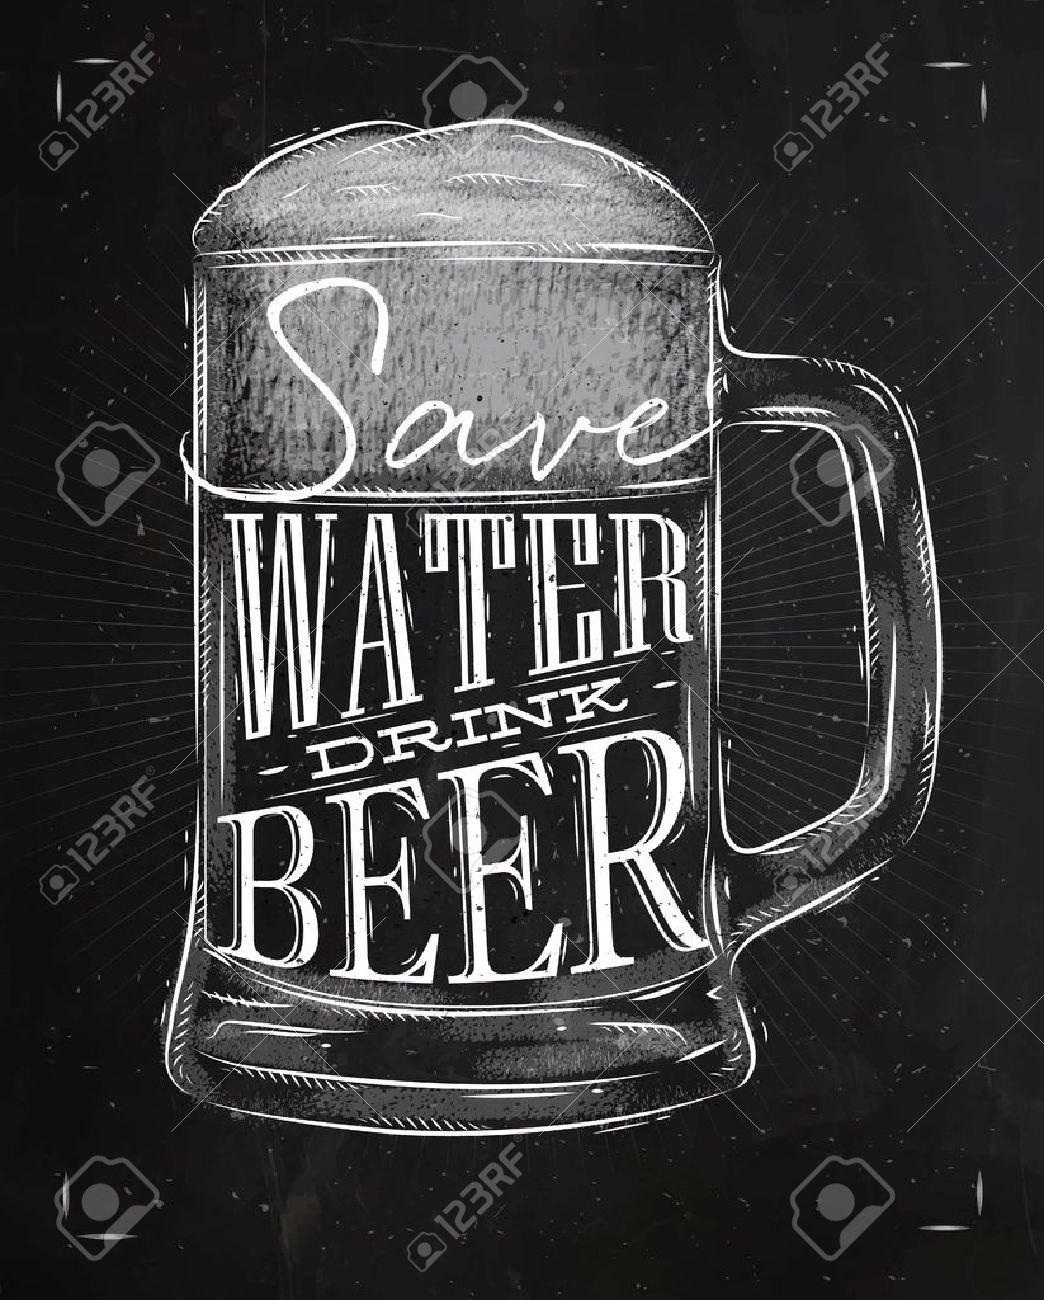 Poster beer glass lettering save water drink beer drawing in vintage style with chalk on chalkboard background - 52579477